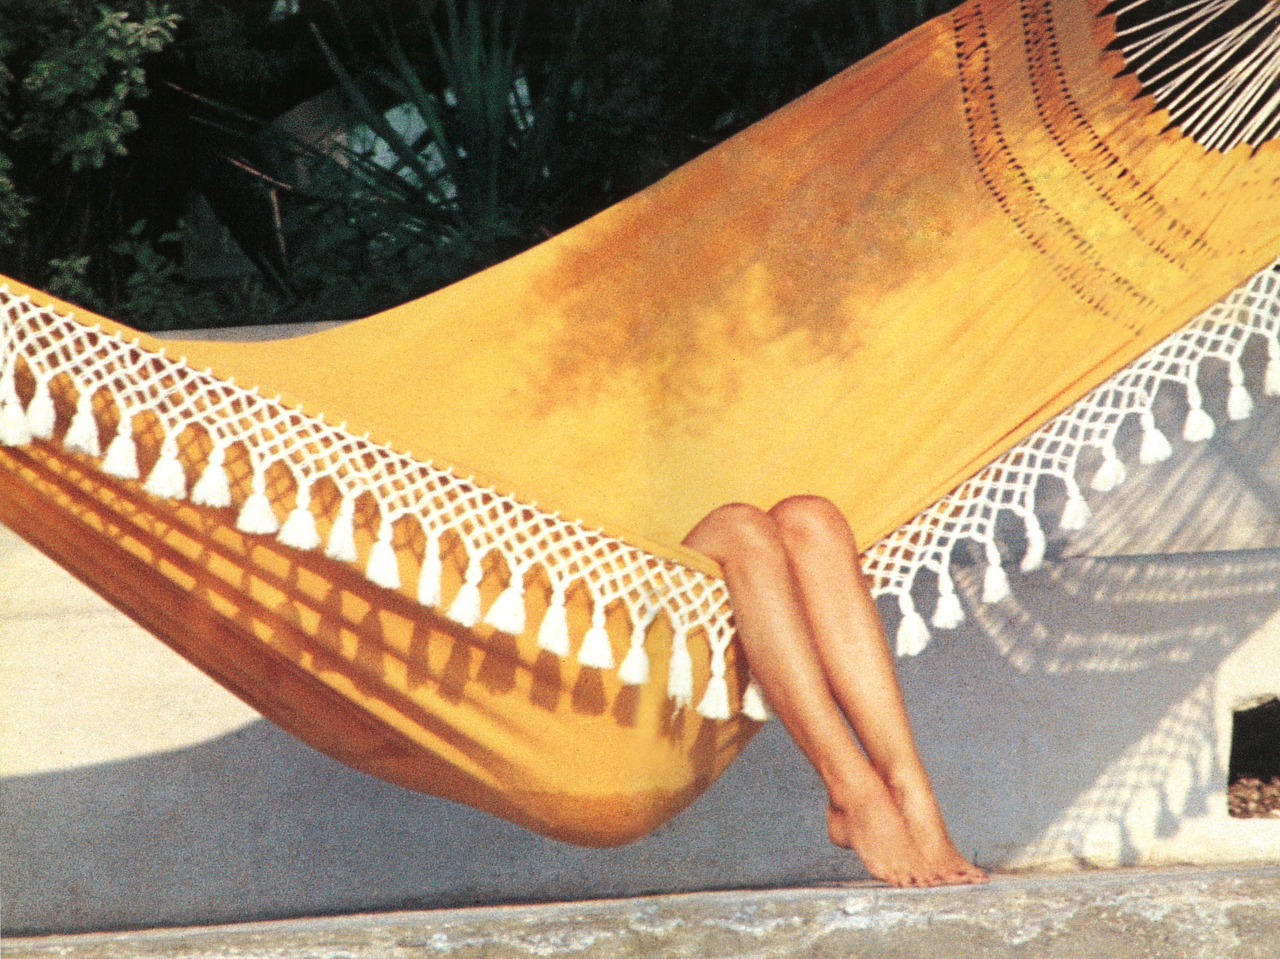 S is for St. Tropez  Brigitte Bardot on a hammock in St. Tropez shot by Slim Aarons. This is one of the many visually arresting photographs found in In The Spirit of St. Tropez.